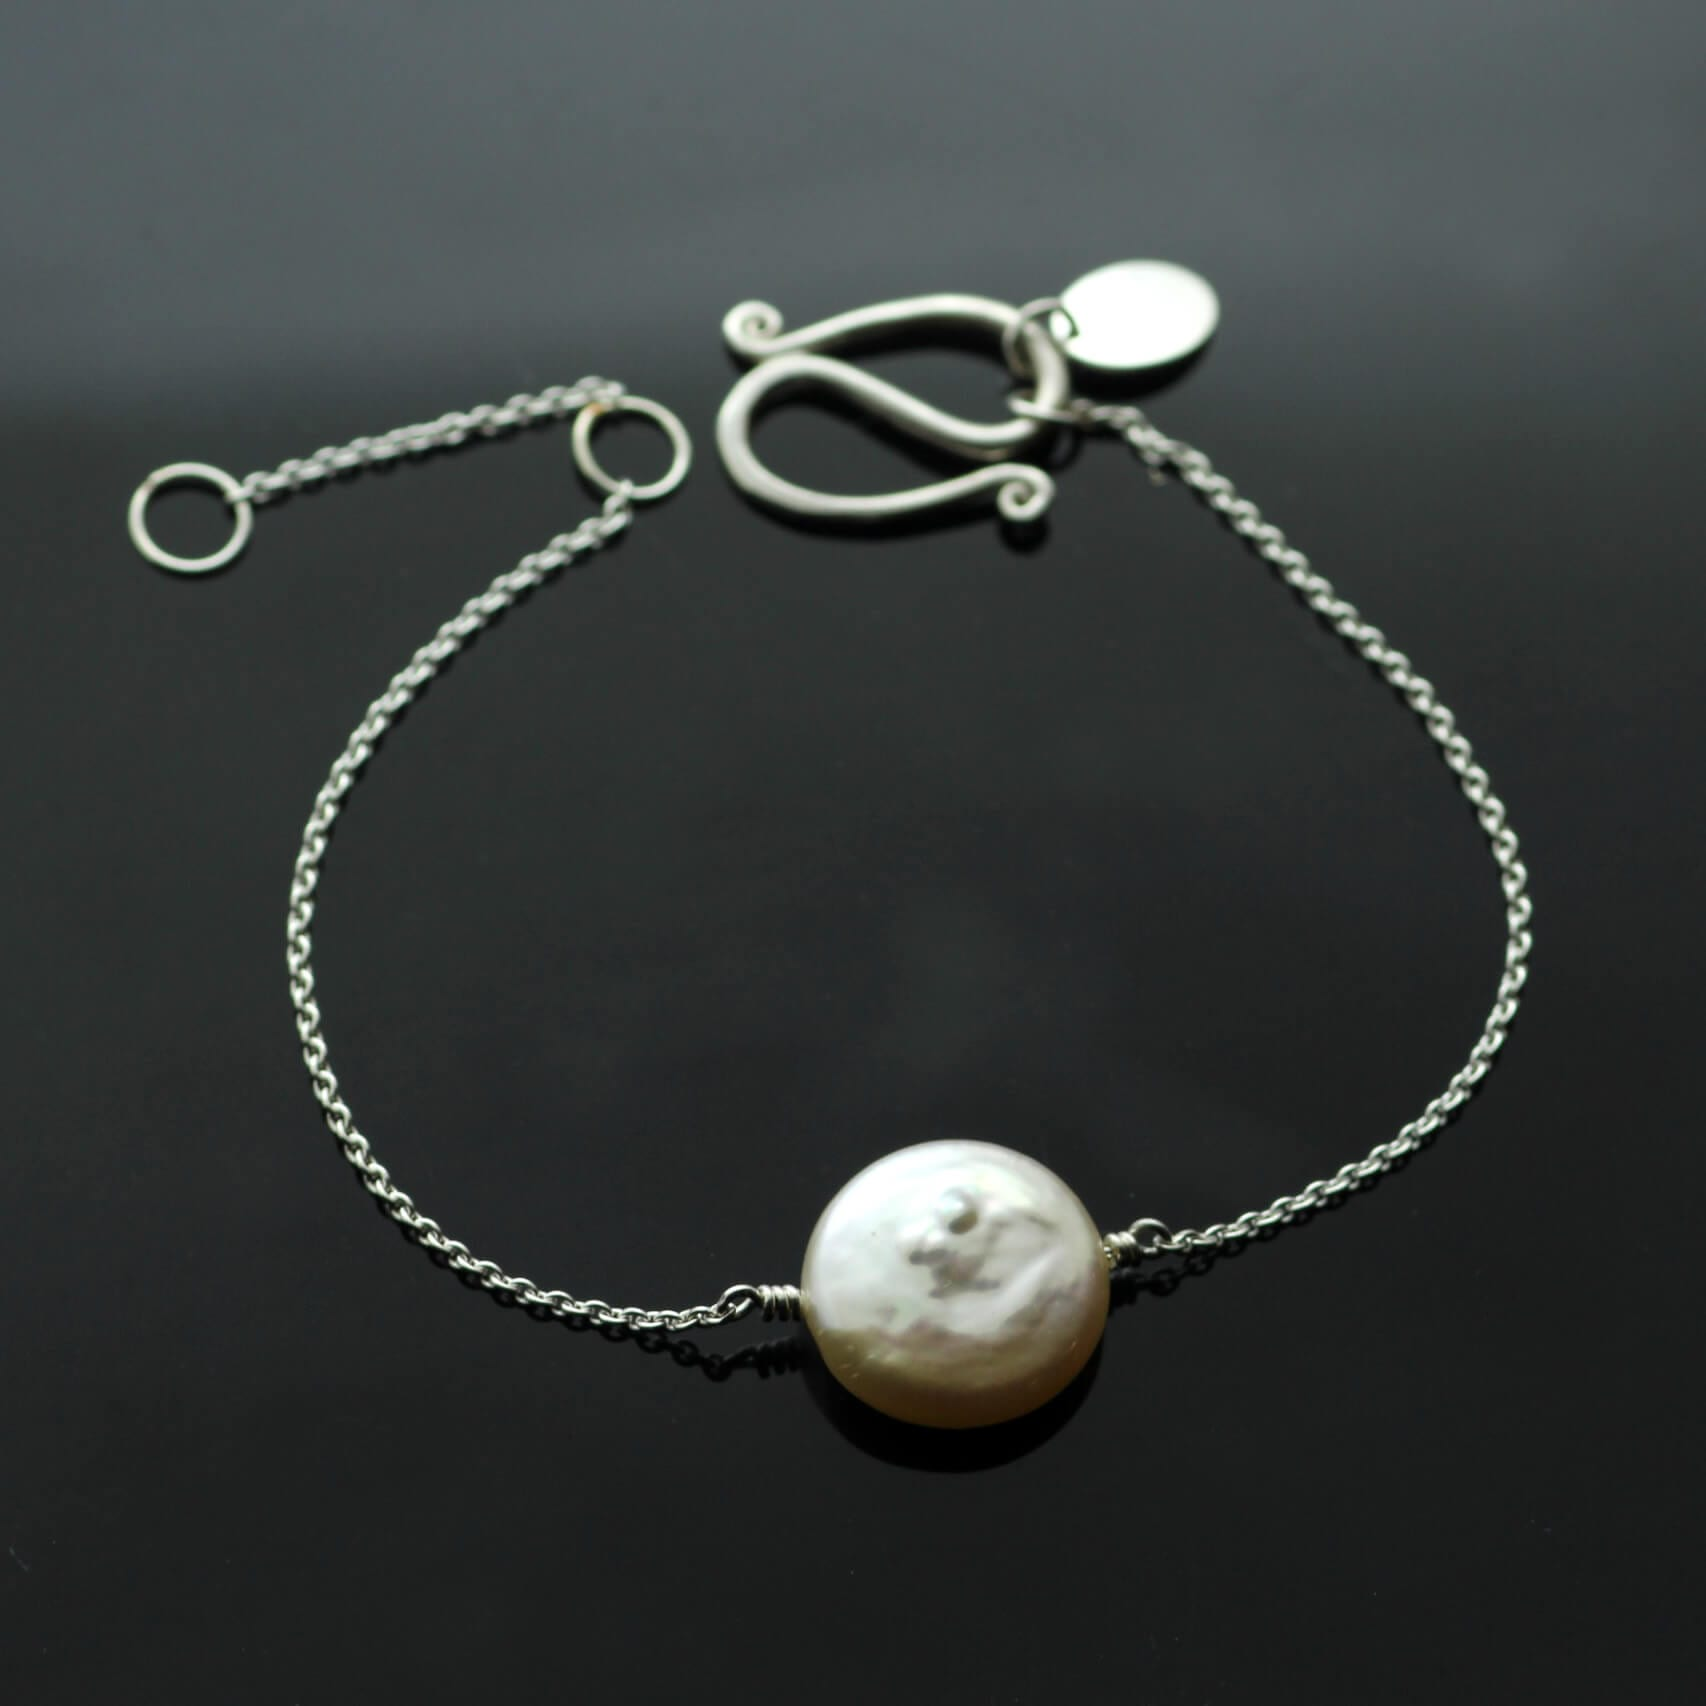 Contemporary white Pearl Sterling Silver handcrafted bracelet